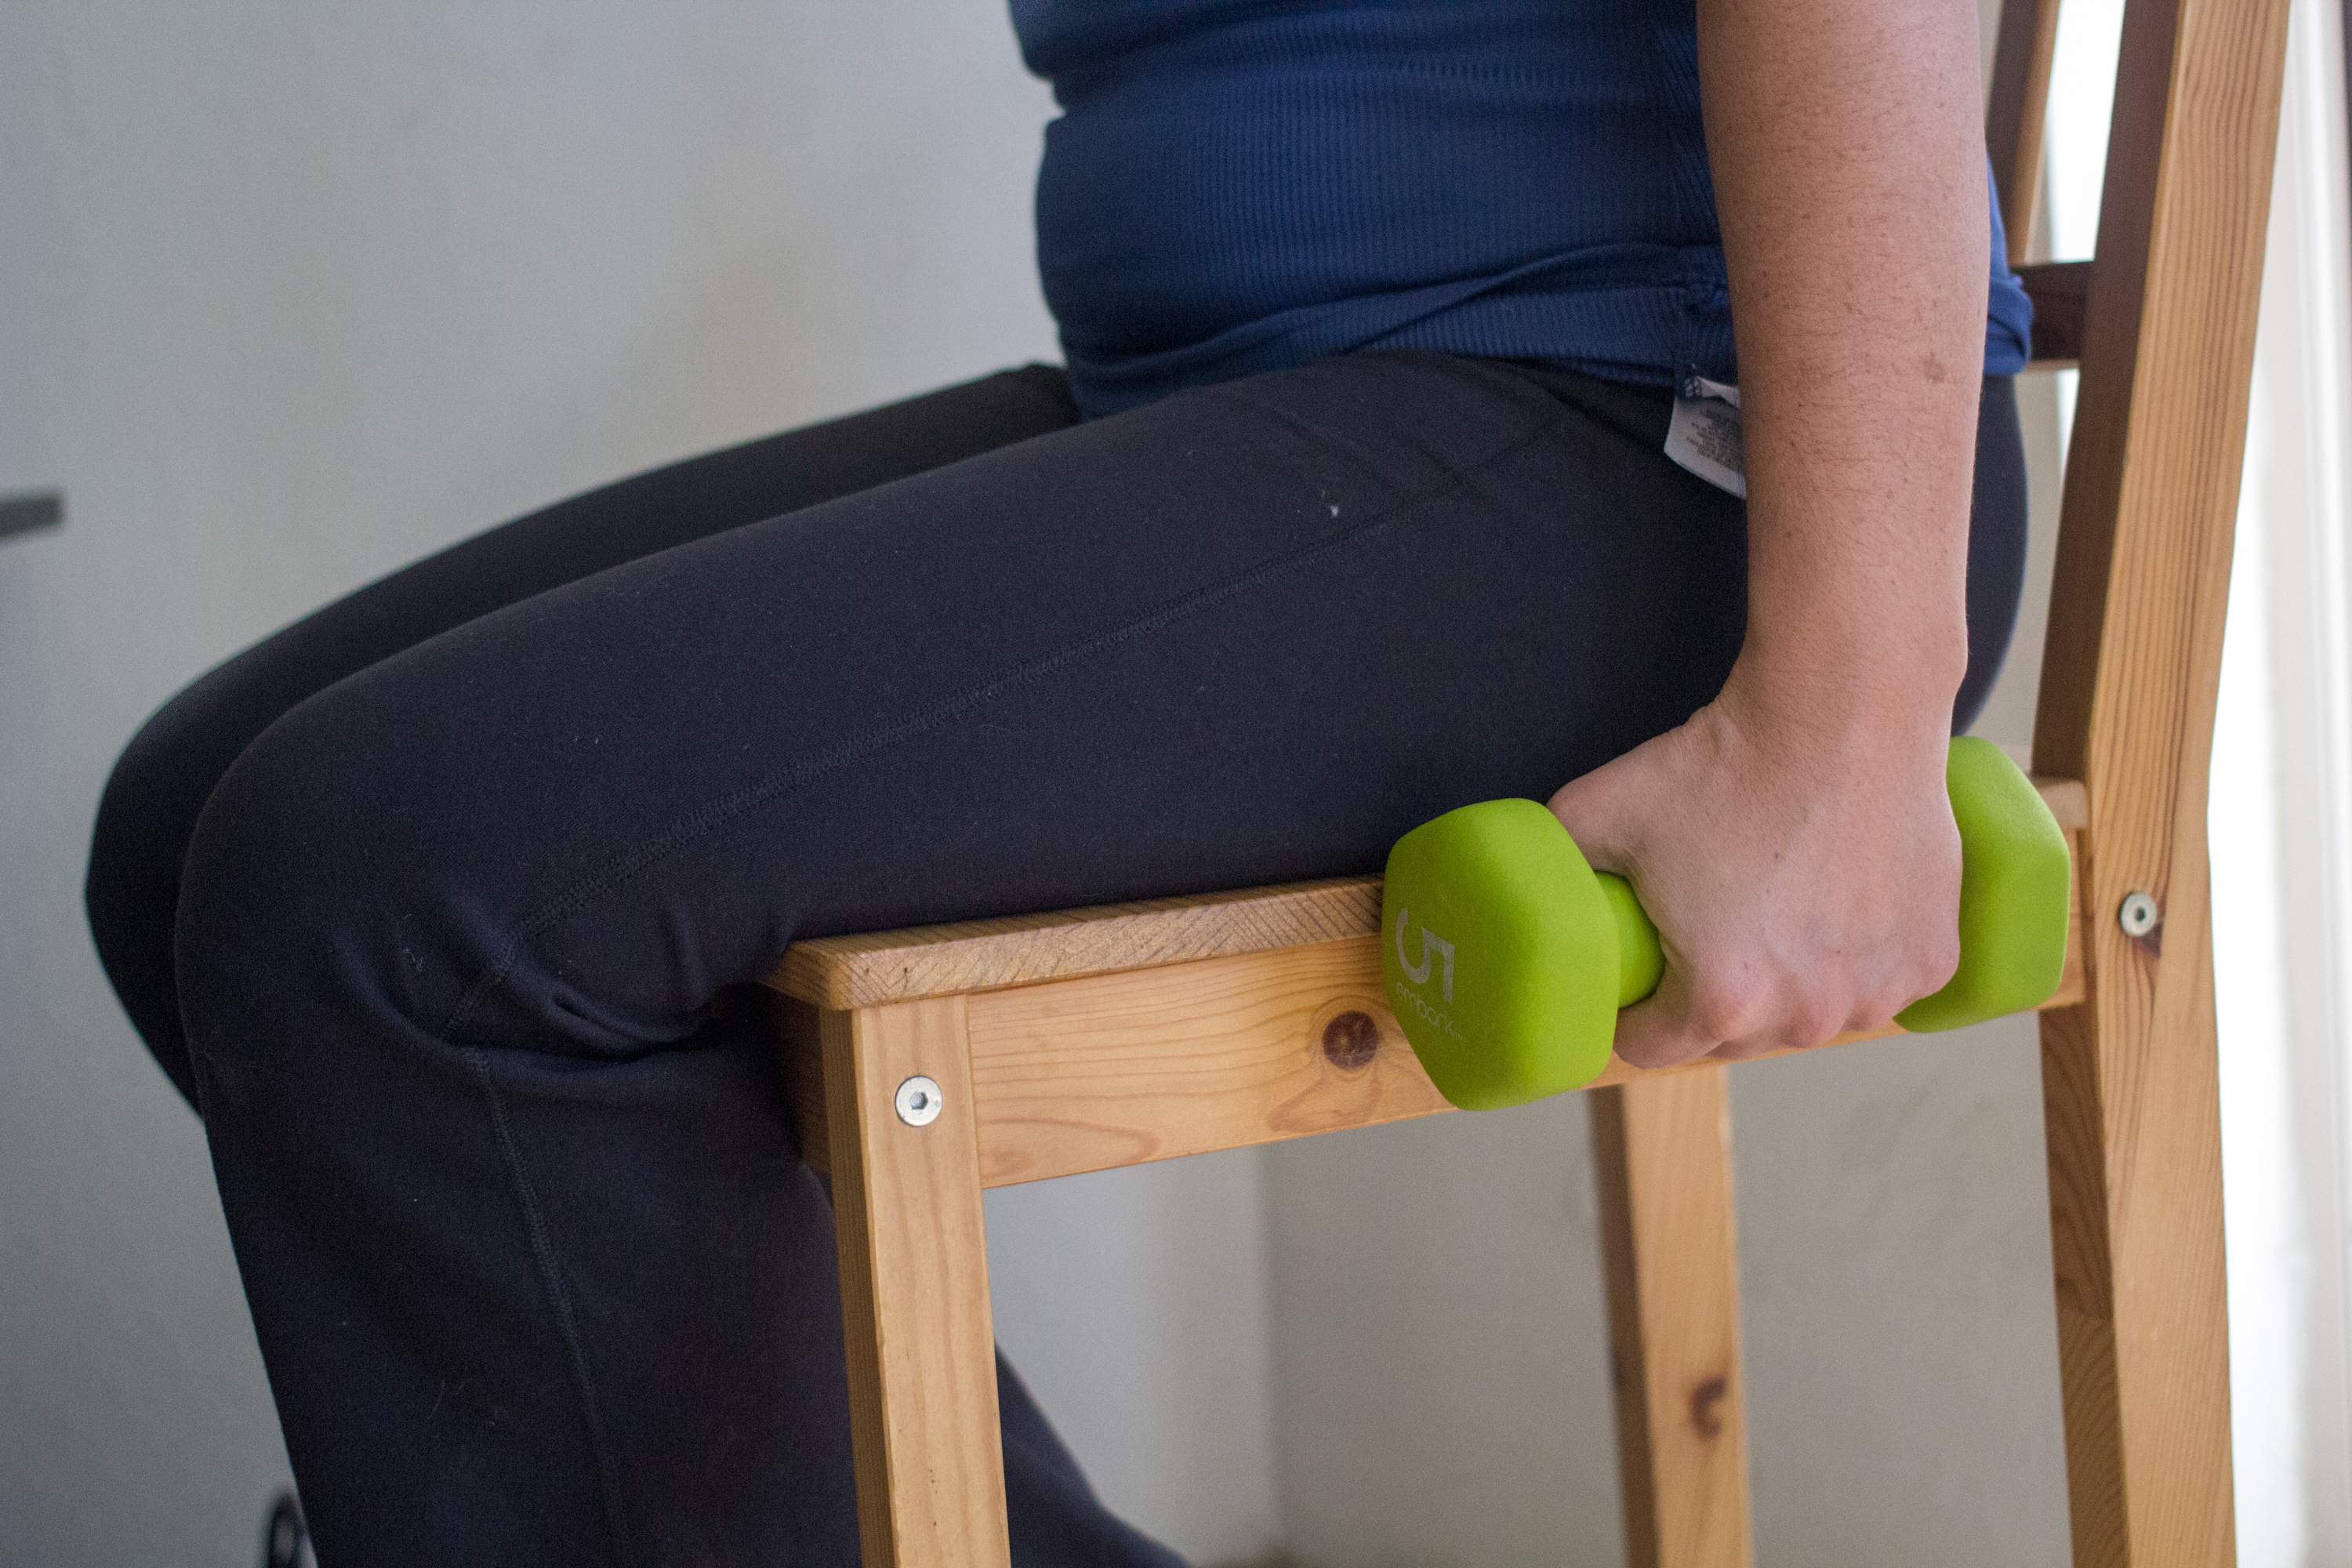 Fruit diet to lose weight in 3 days